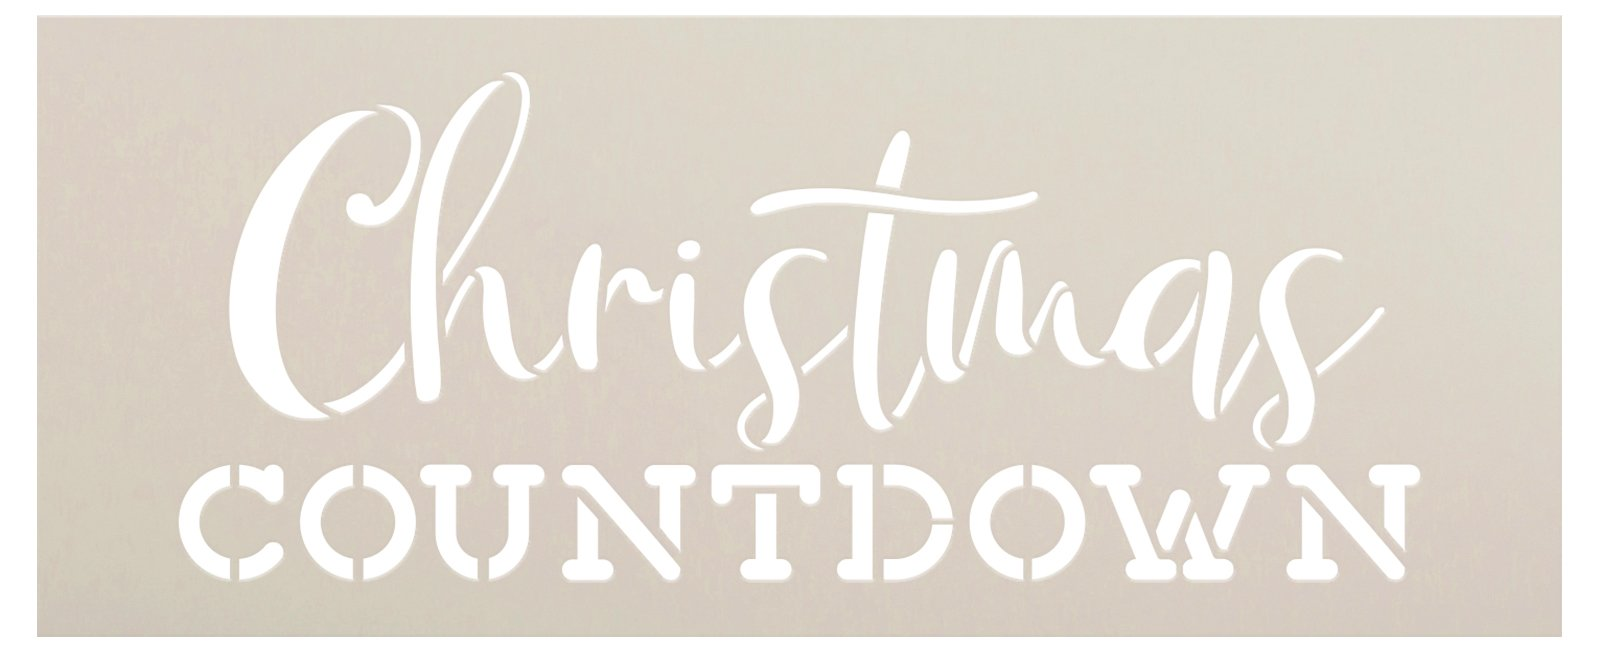 Christmas Countdown Stencil by StudioR12   DIY Holiday Advent Calendar Decor   Craft & Paint Winter Wood Signs   Select Size